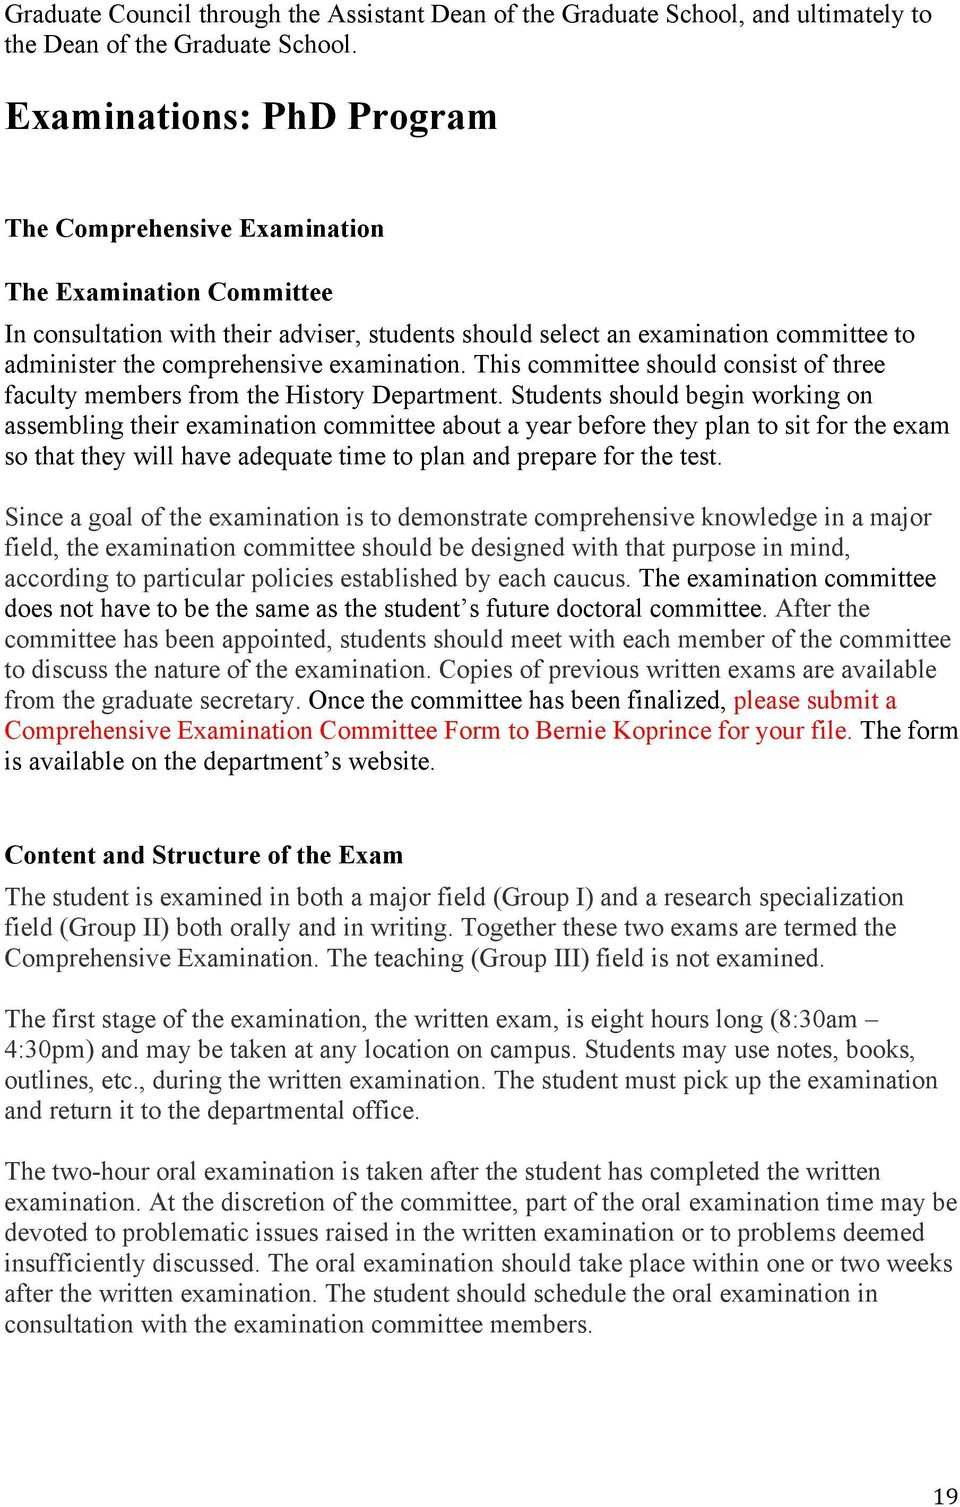 examination. This committee should consist of three faculty members from the History Department.